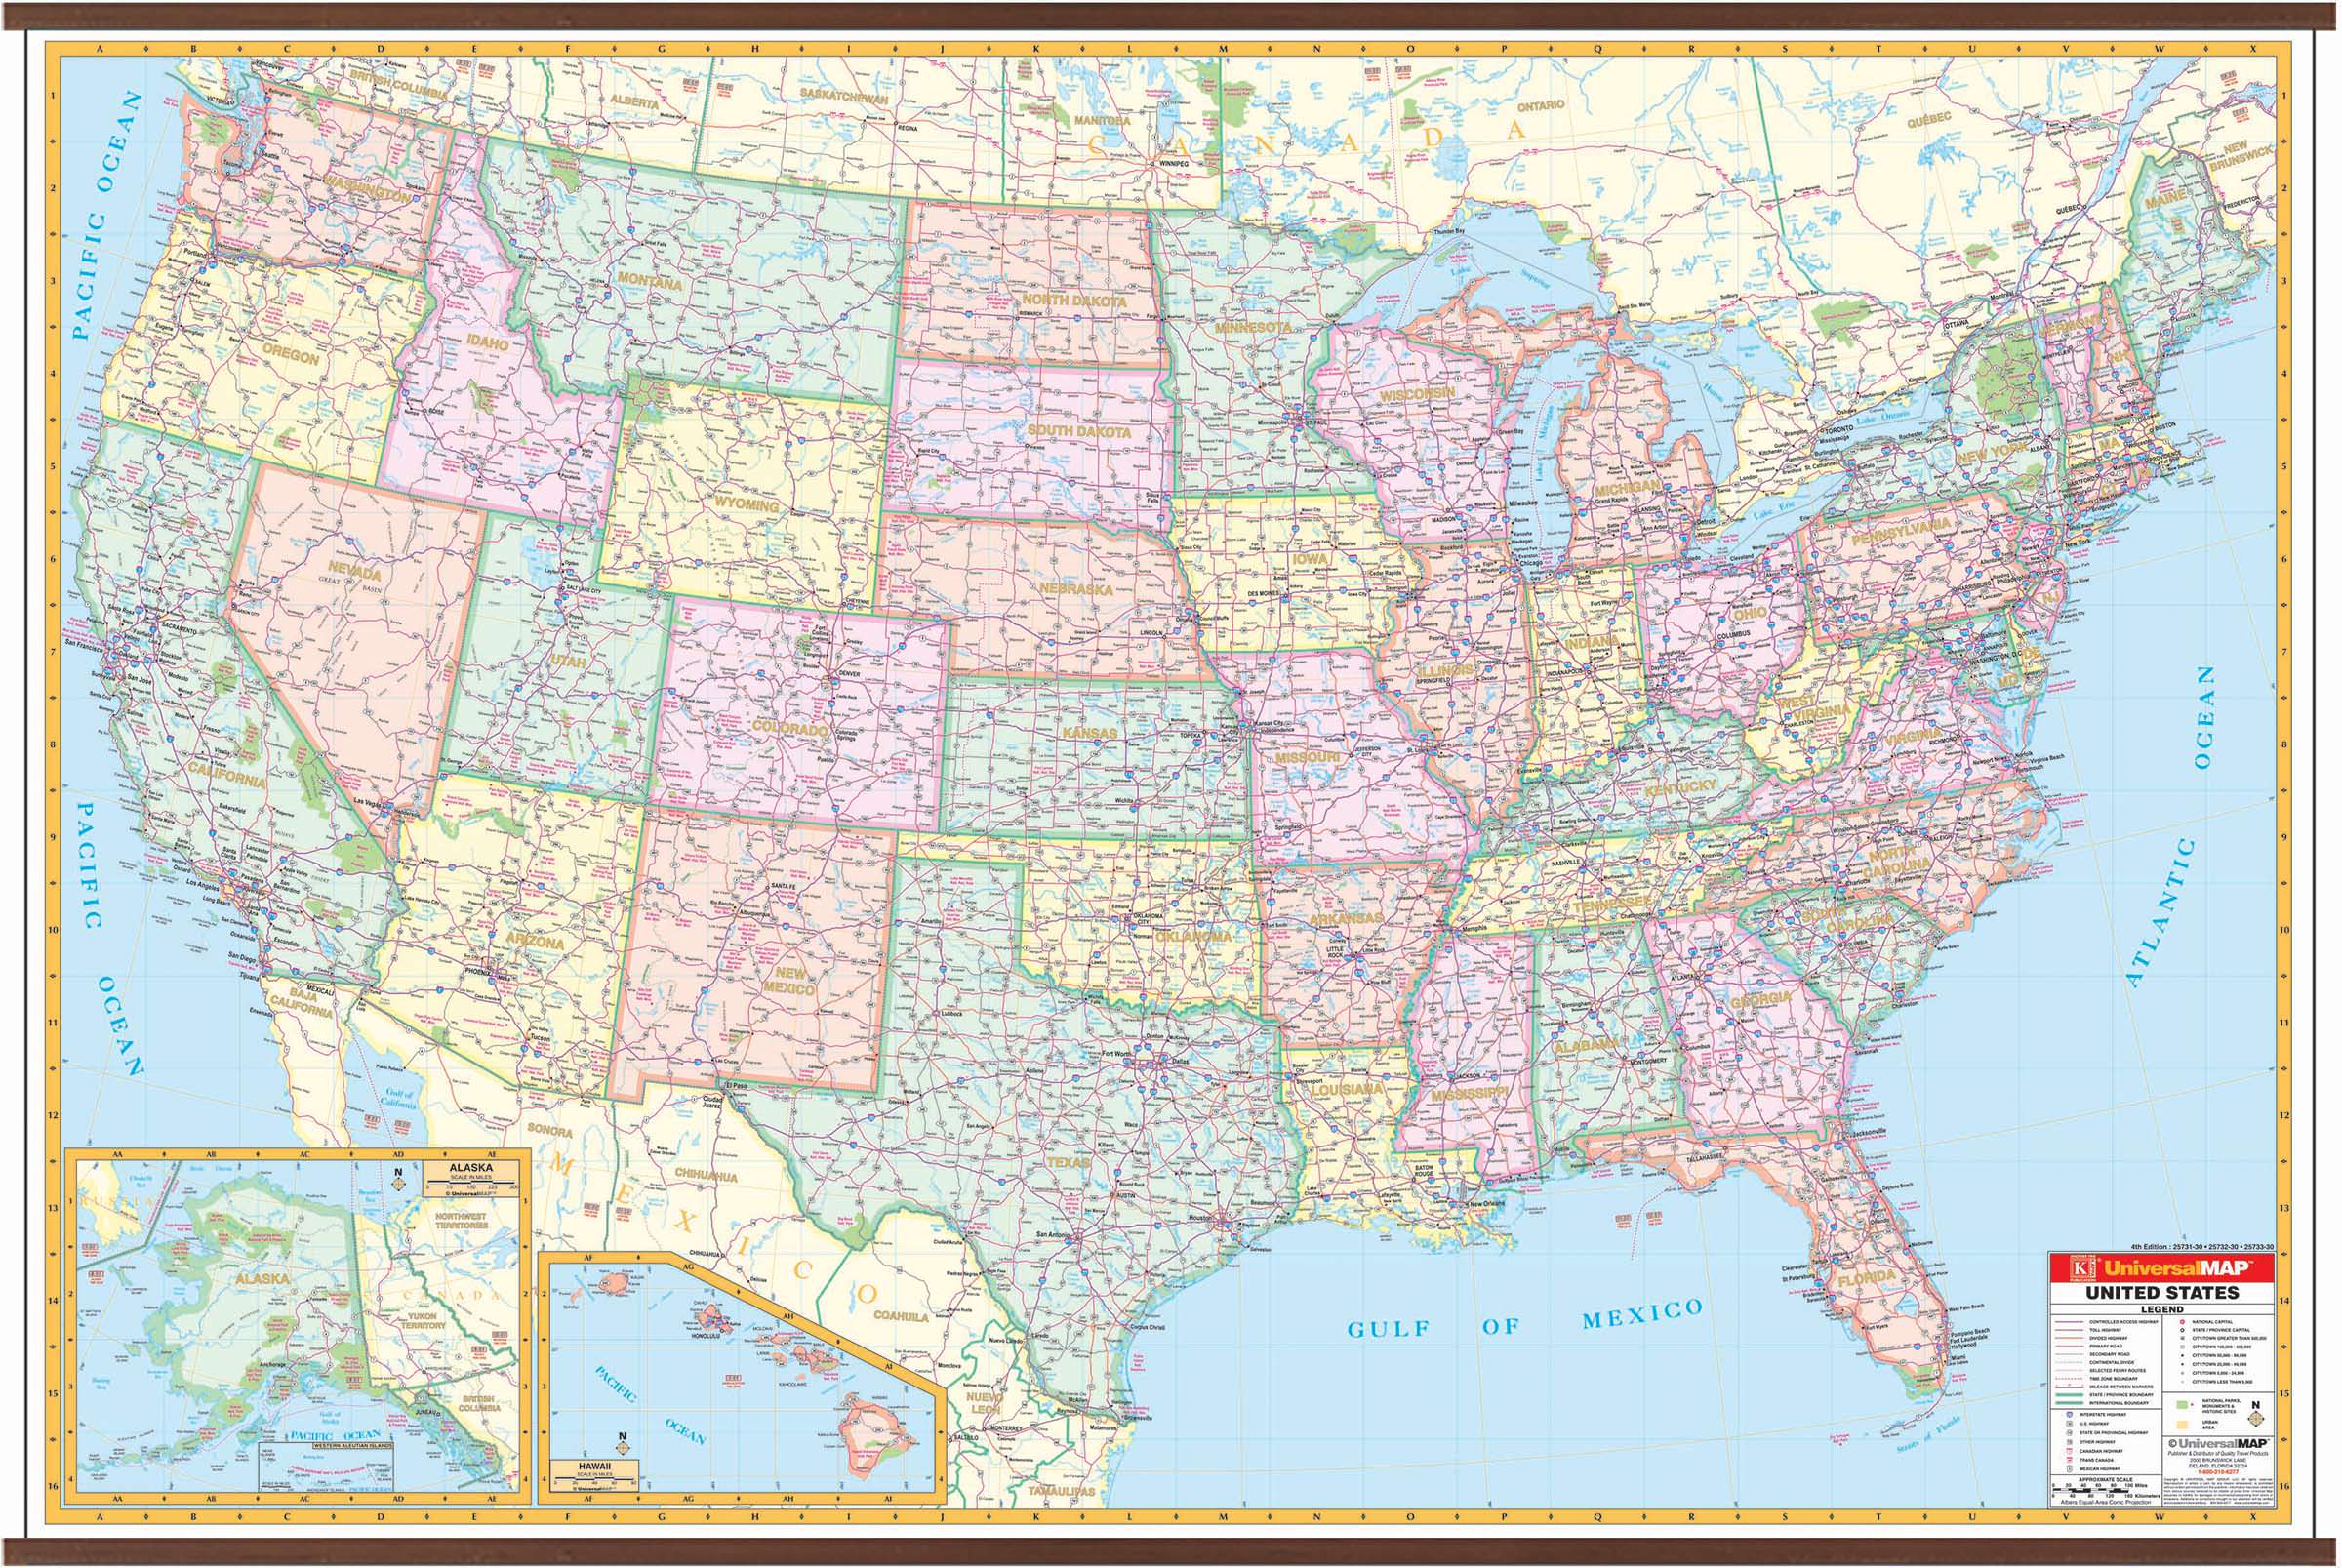 Us Interstate Map US Interstate Wall Map – KAPPA MAP GROUP Us Interstate Map